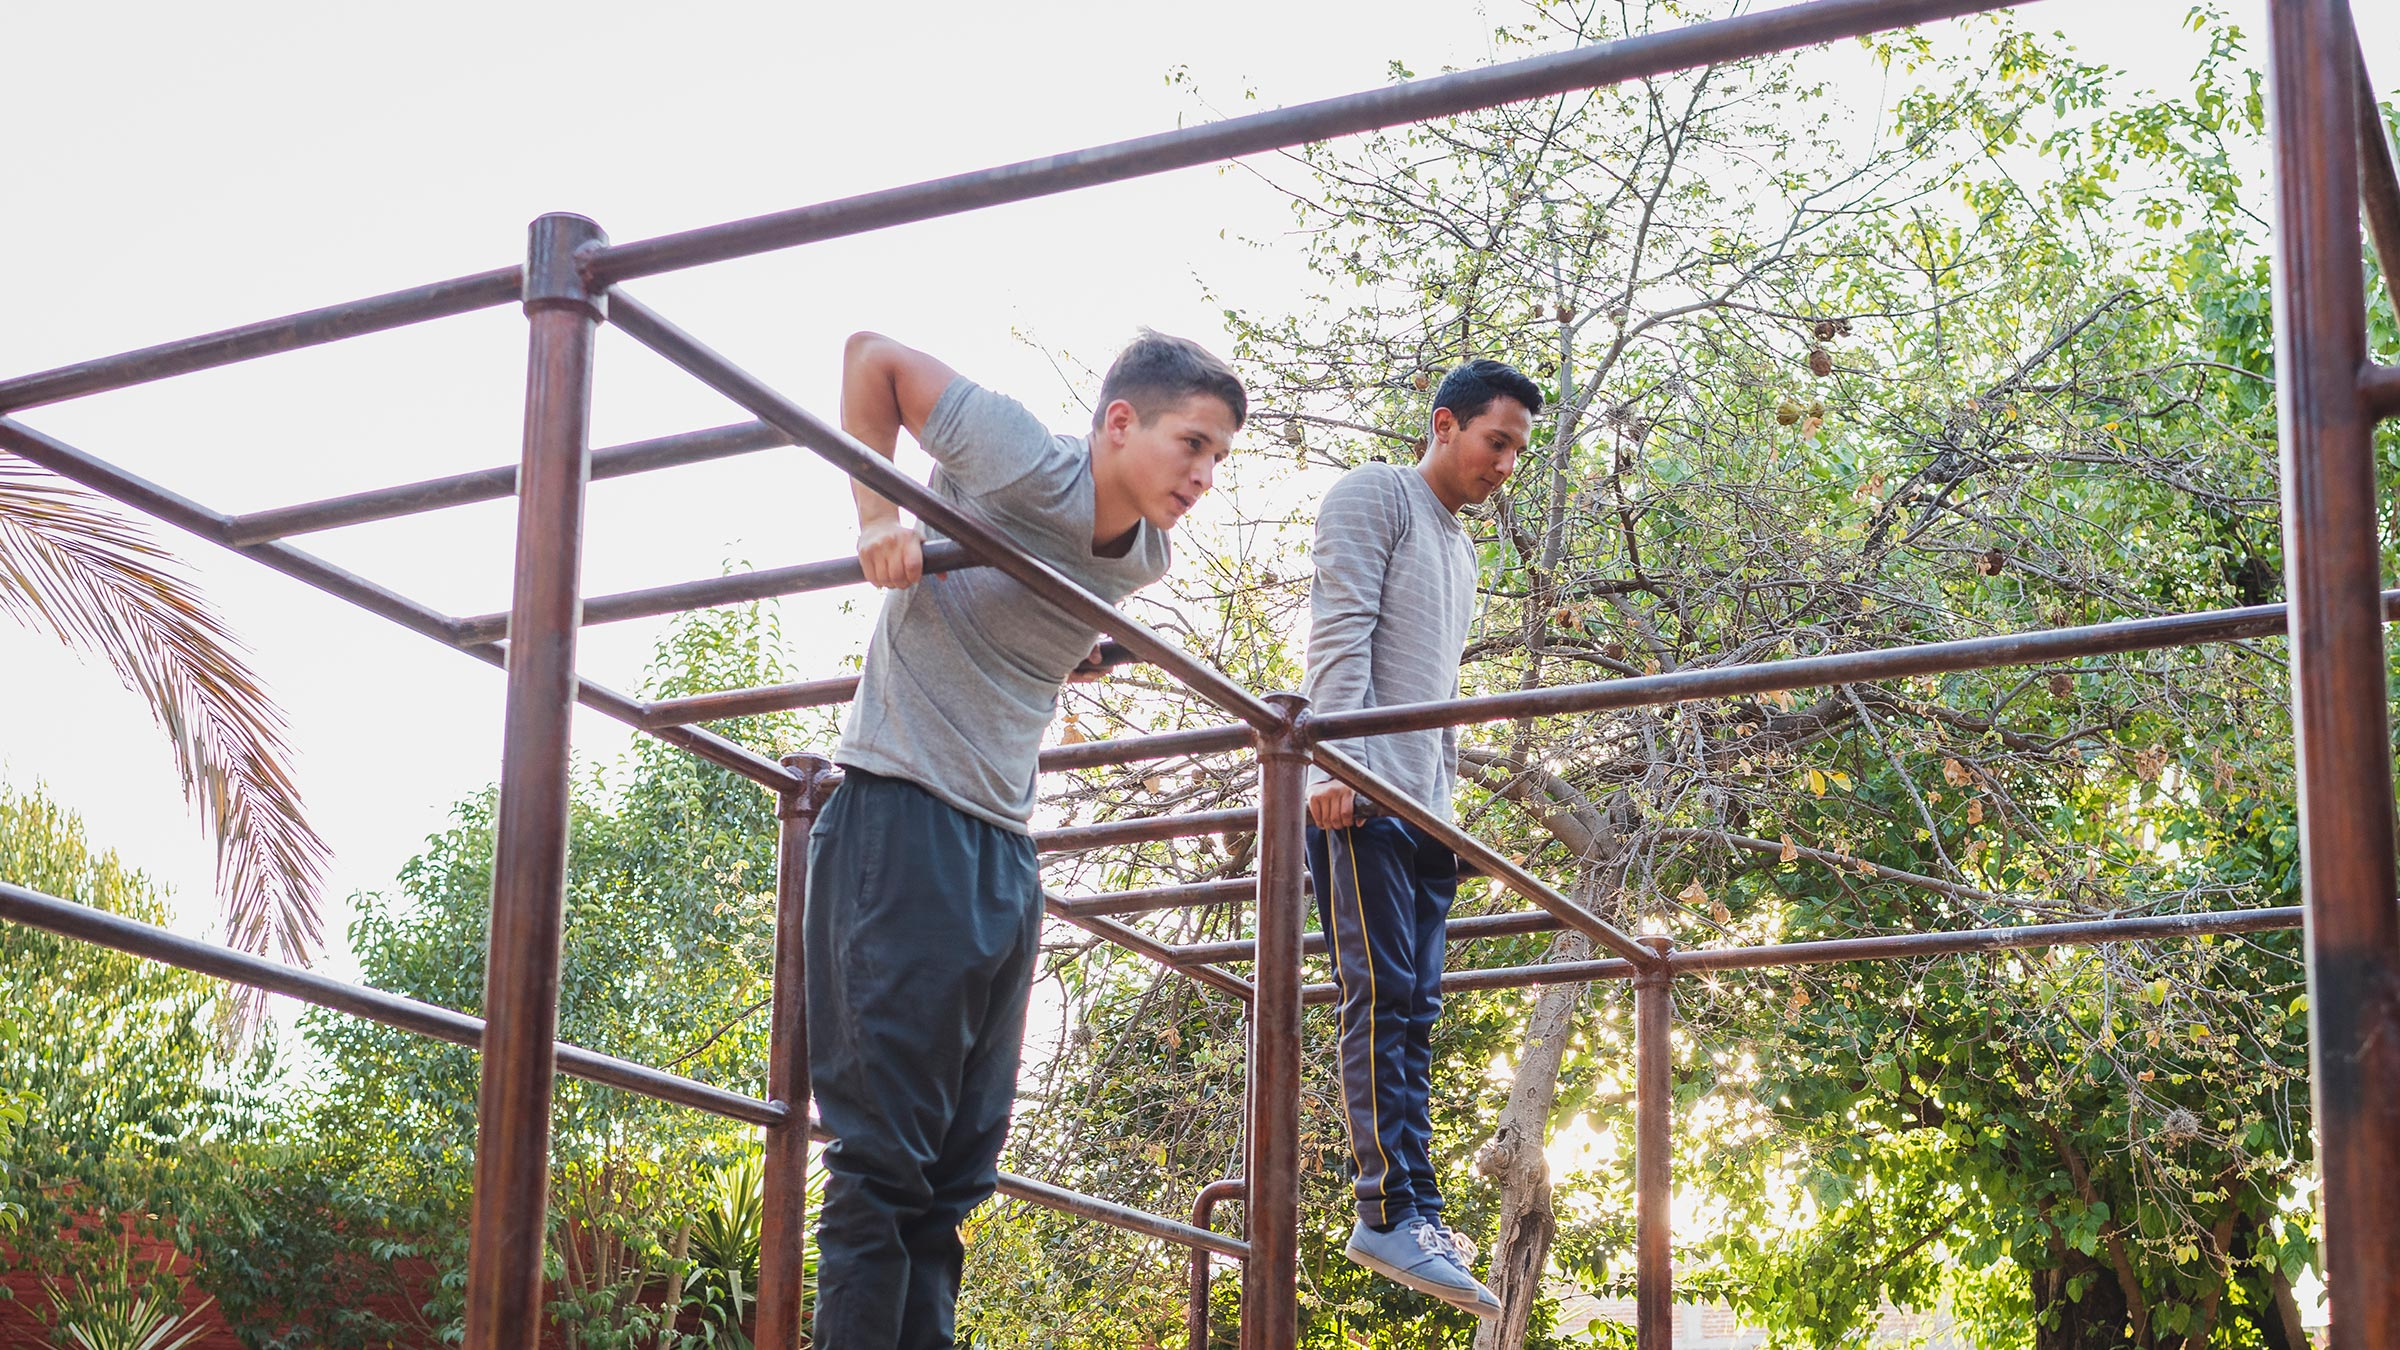 Two men working out outdoors